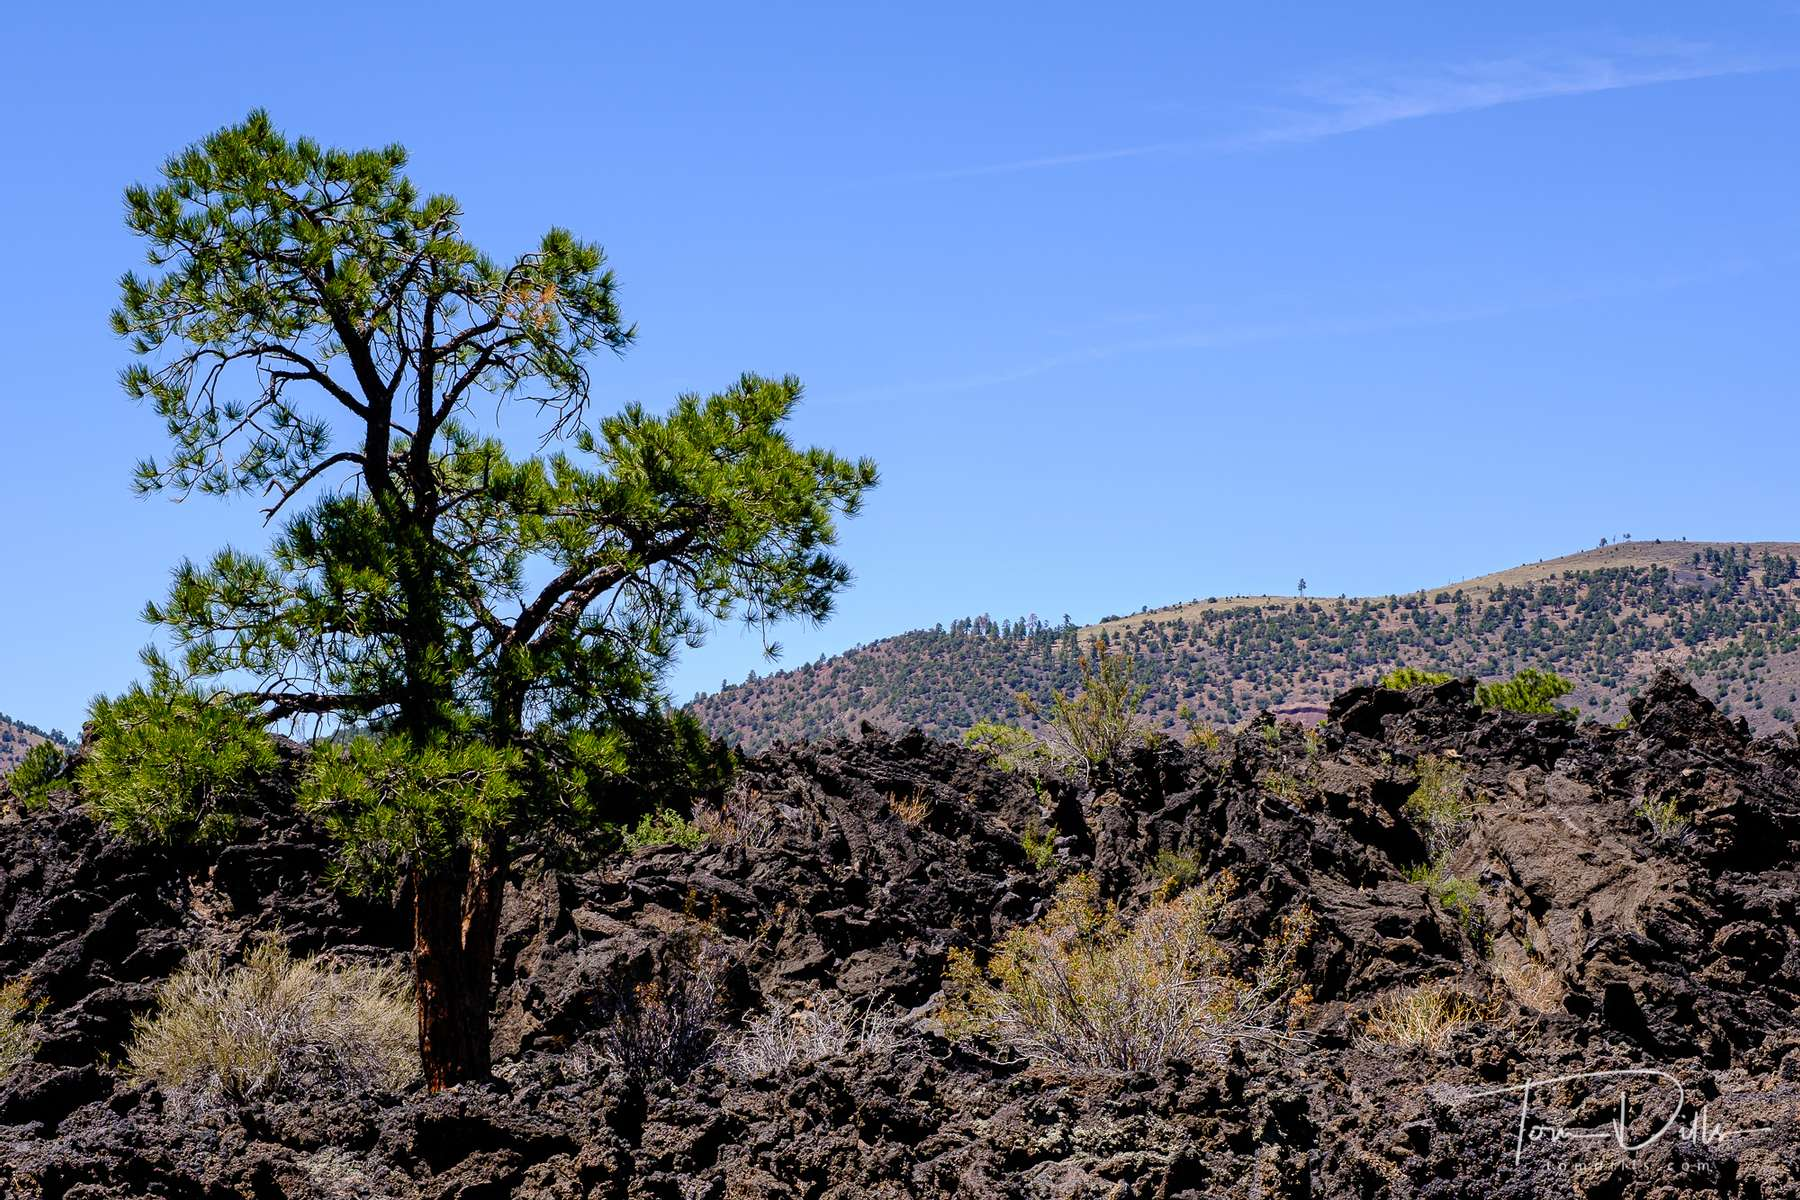 Sunset Crater Volcano National Monument in Arizona